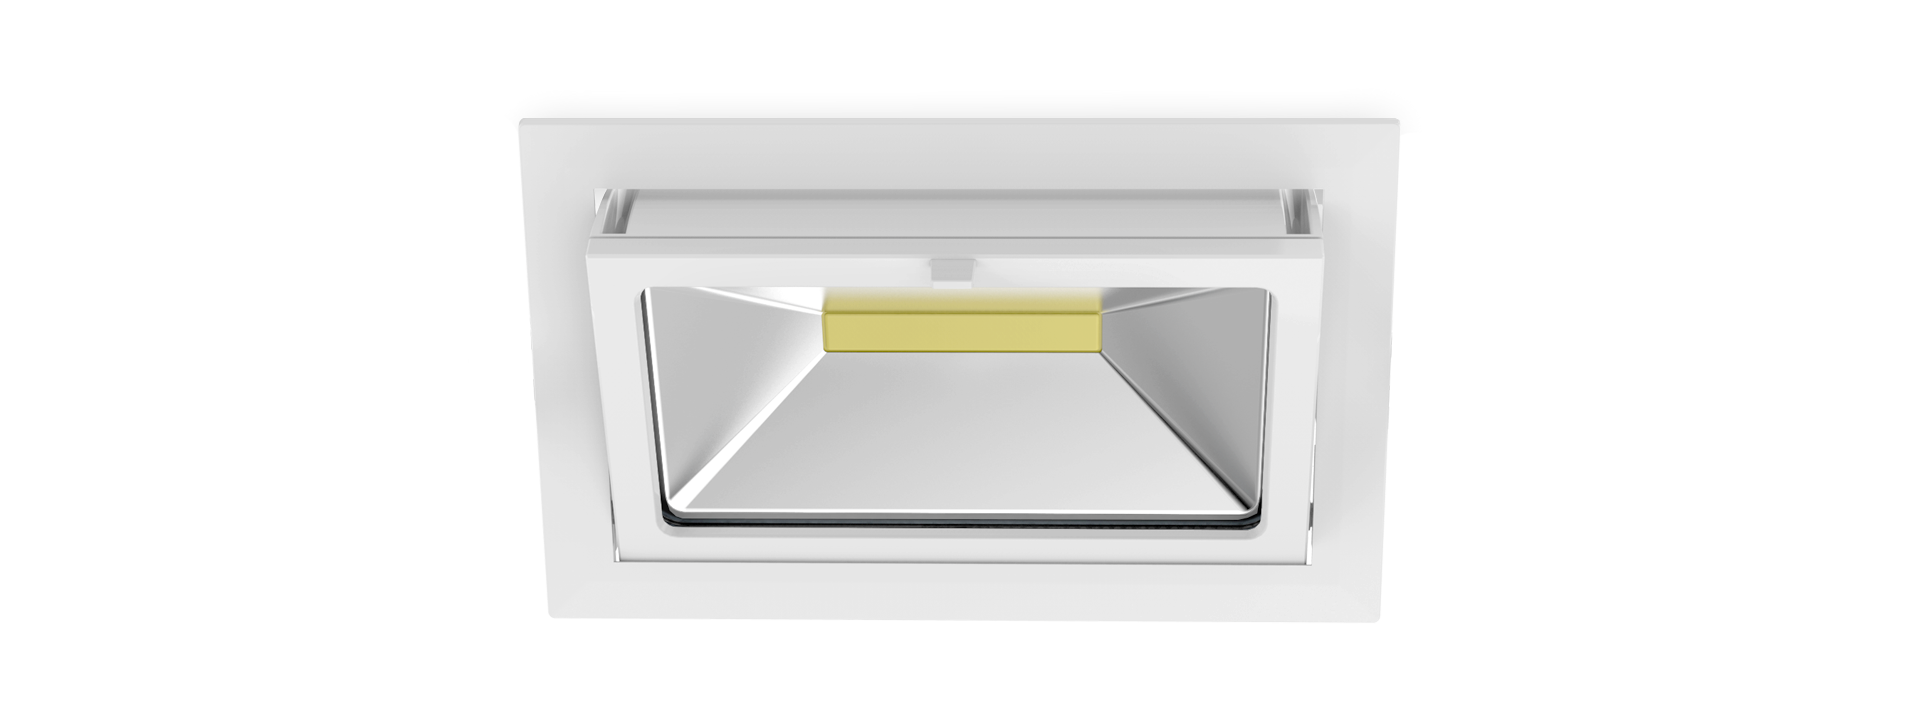 rectangular ip65 cob led downlight